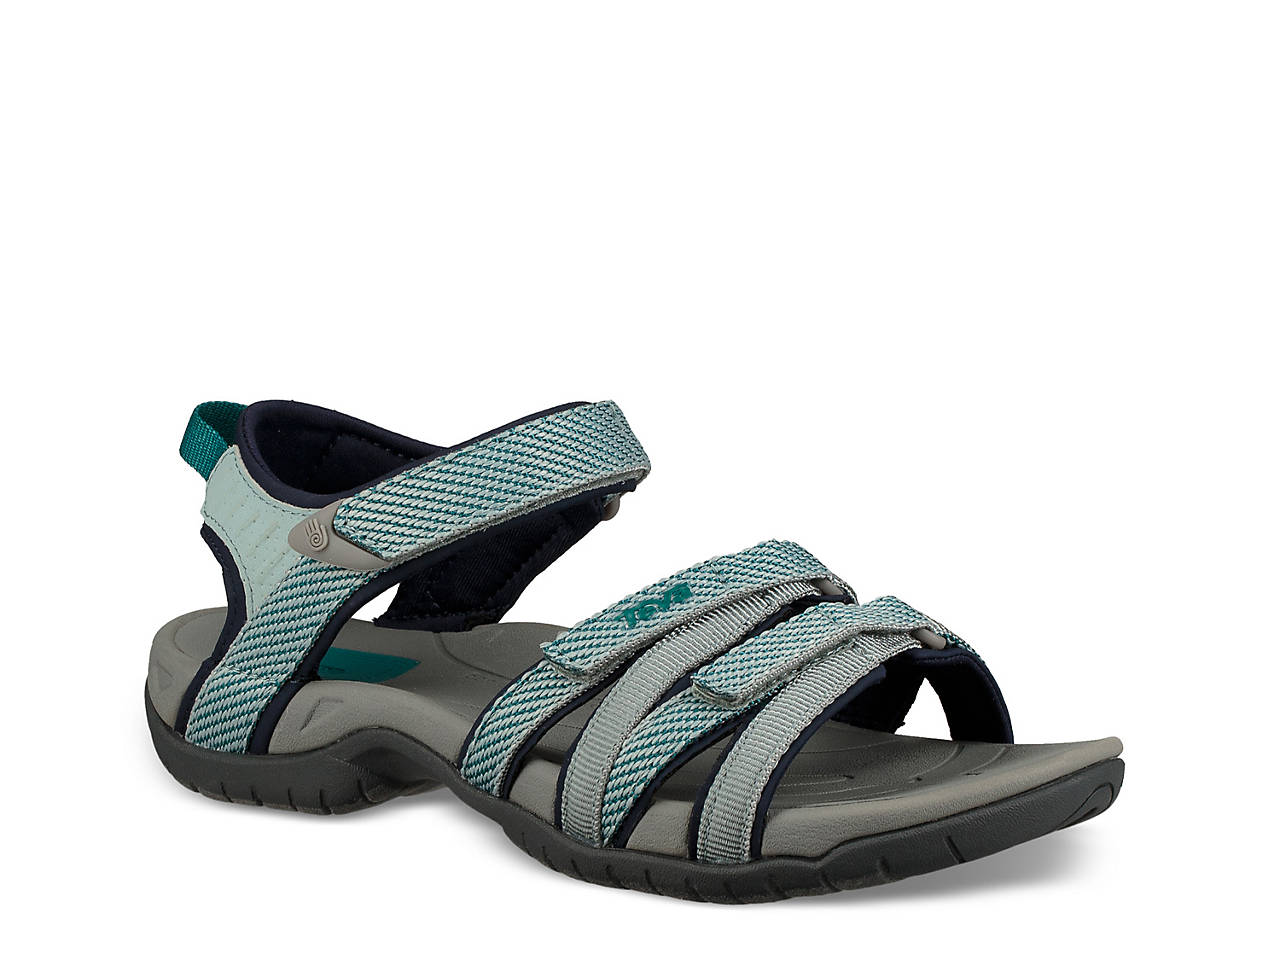 256810cca Teva Tirra Sandal Women s Shoes